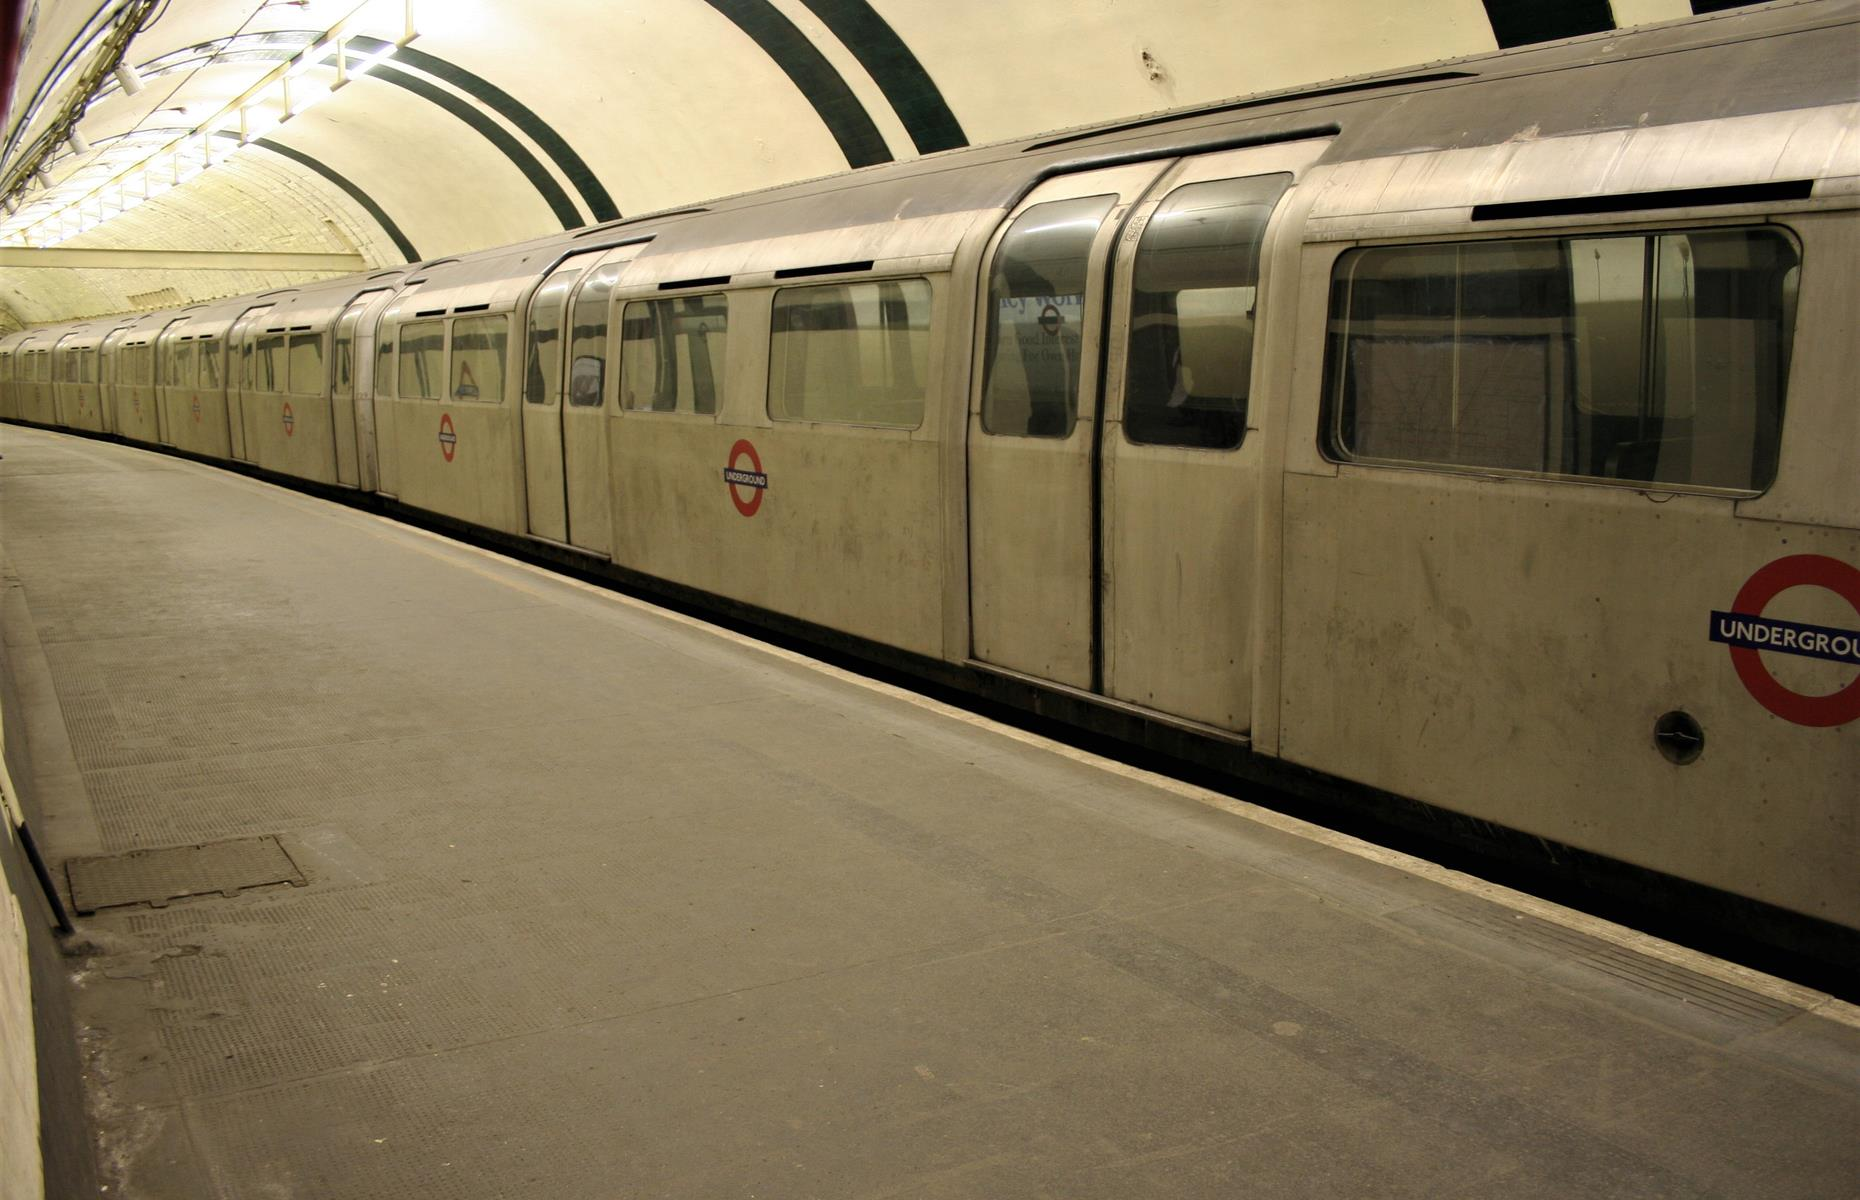 Slide 3 of 32: The London Transport Museum's Hidden London tours typically allow visitors to snoop around the city's disused tube stations. These include Aldwych (pictured), a former stop on the Piccadilly line that opened in 1907 and closed in 1994, and whose ticket hall, original elevators, and abandoned platforms and tunnels are still intact. Tours are temporarily on hold due to COVID-19, but it's hoped that they'll resume towards the end of 2020. For now, you can register for virtual experiences instead.